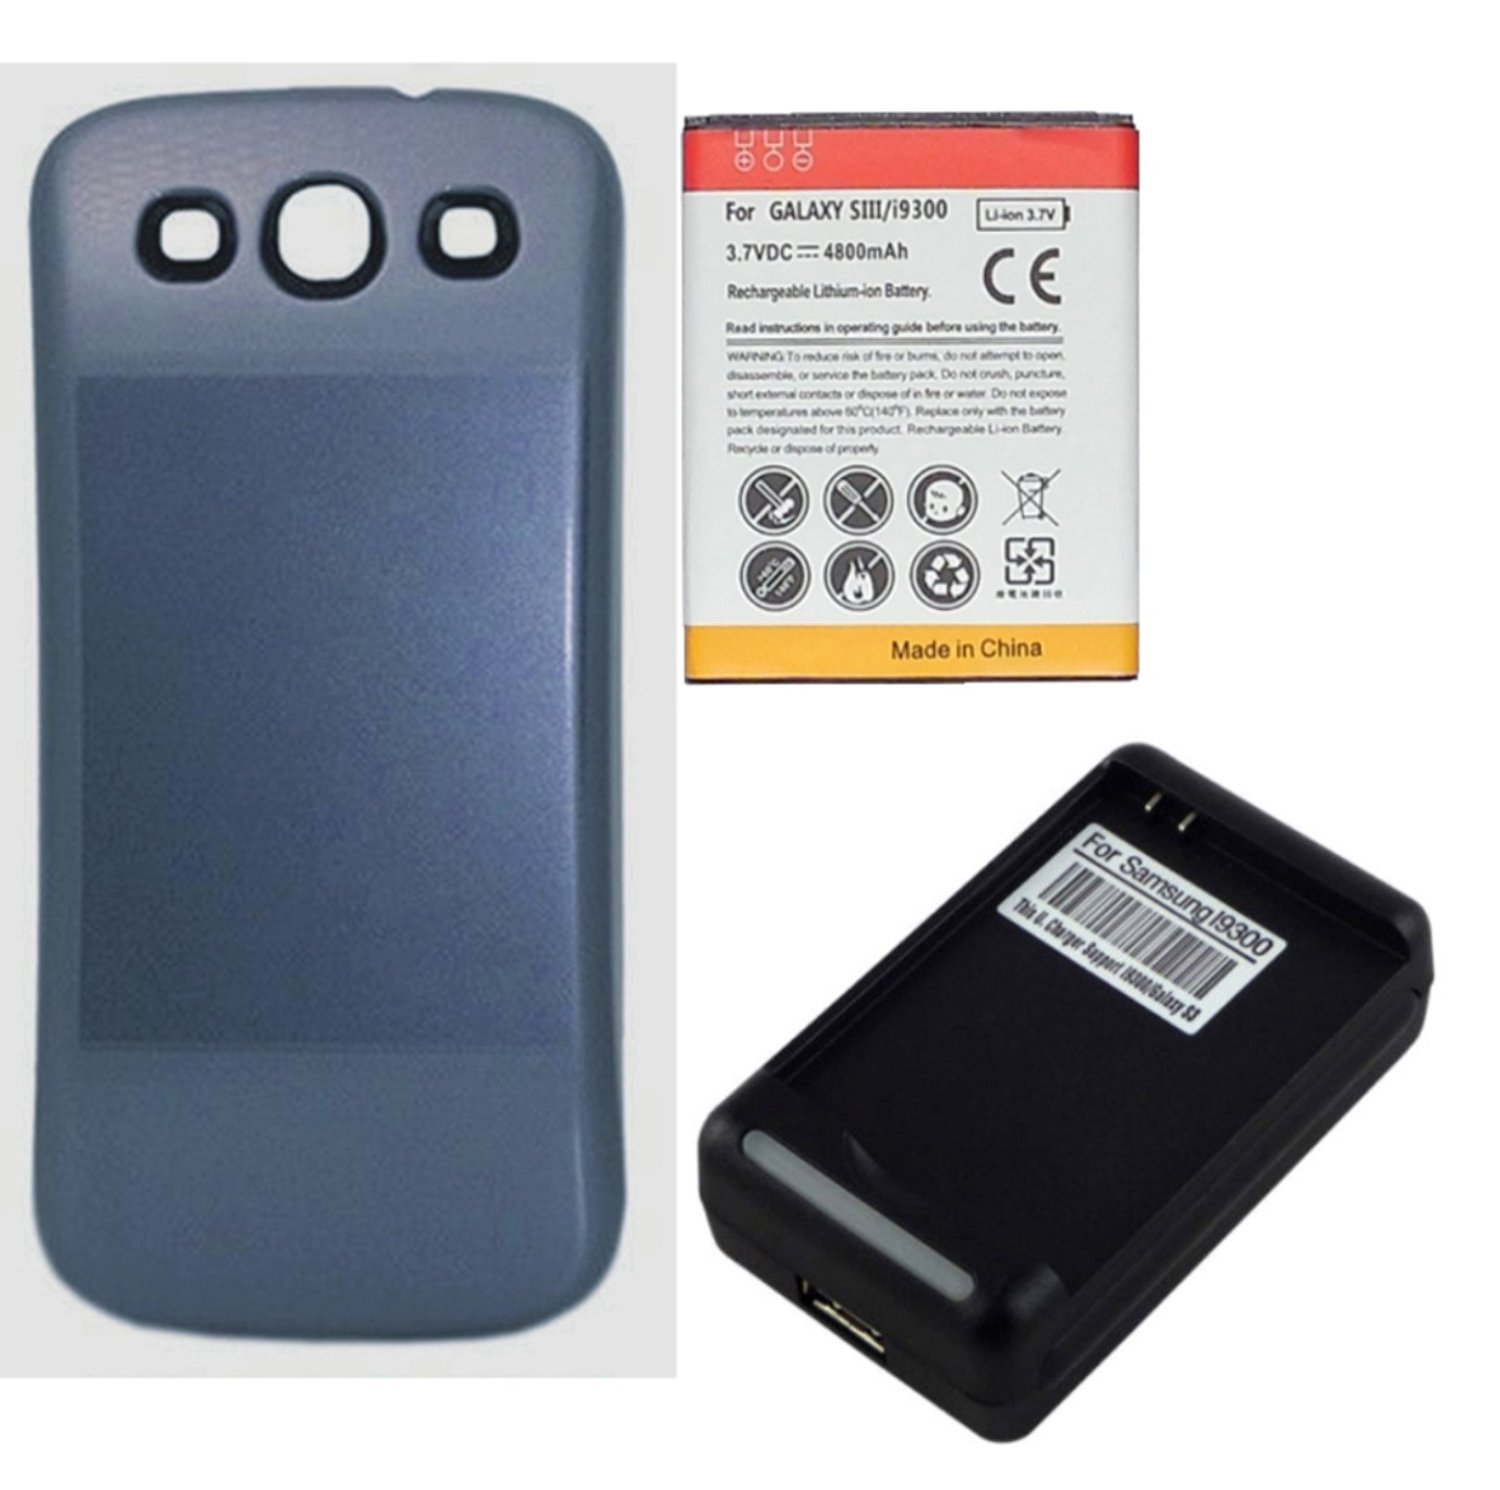 Fourstarr Deals 4800mAh Extended Battery with Blue Door + USB Dock Wall Charger for Samsung Galaxy S3 i9300, L710, i747, i545, T999